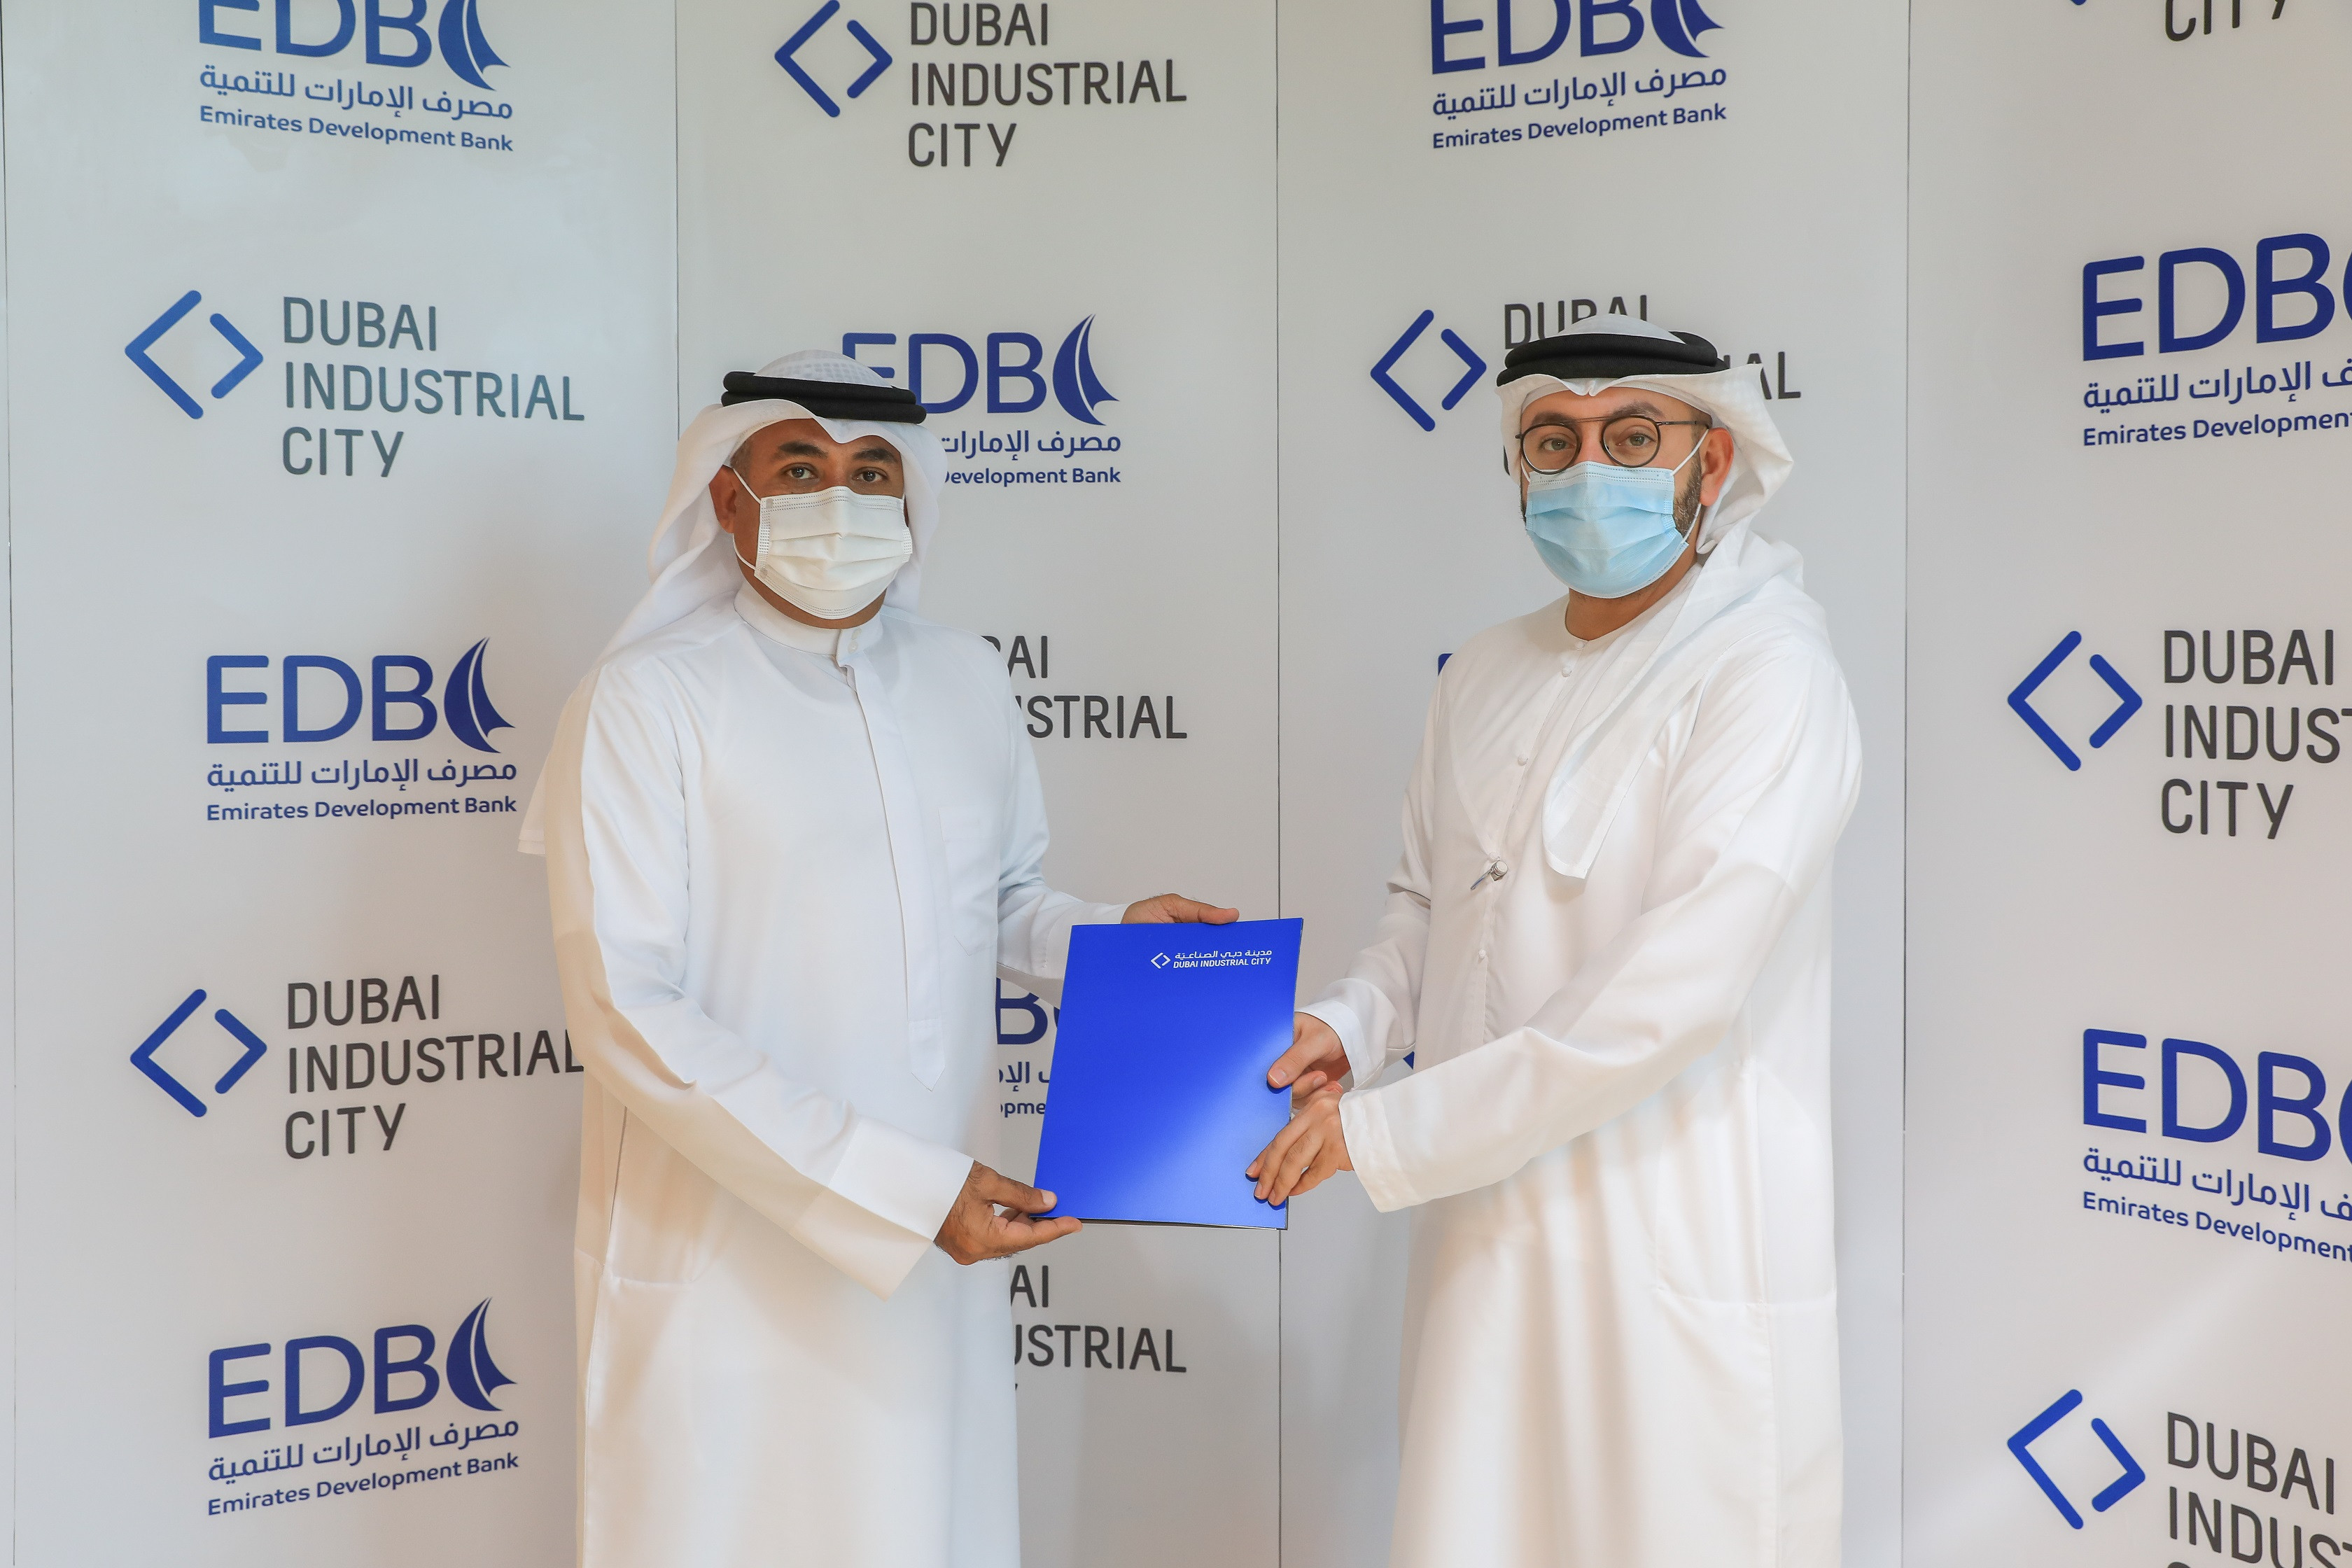 Dubai Industrial City, Emirates Development Bank sign strategic agreement to boost advanced manufacturing, industrial growth